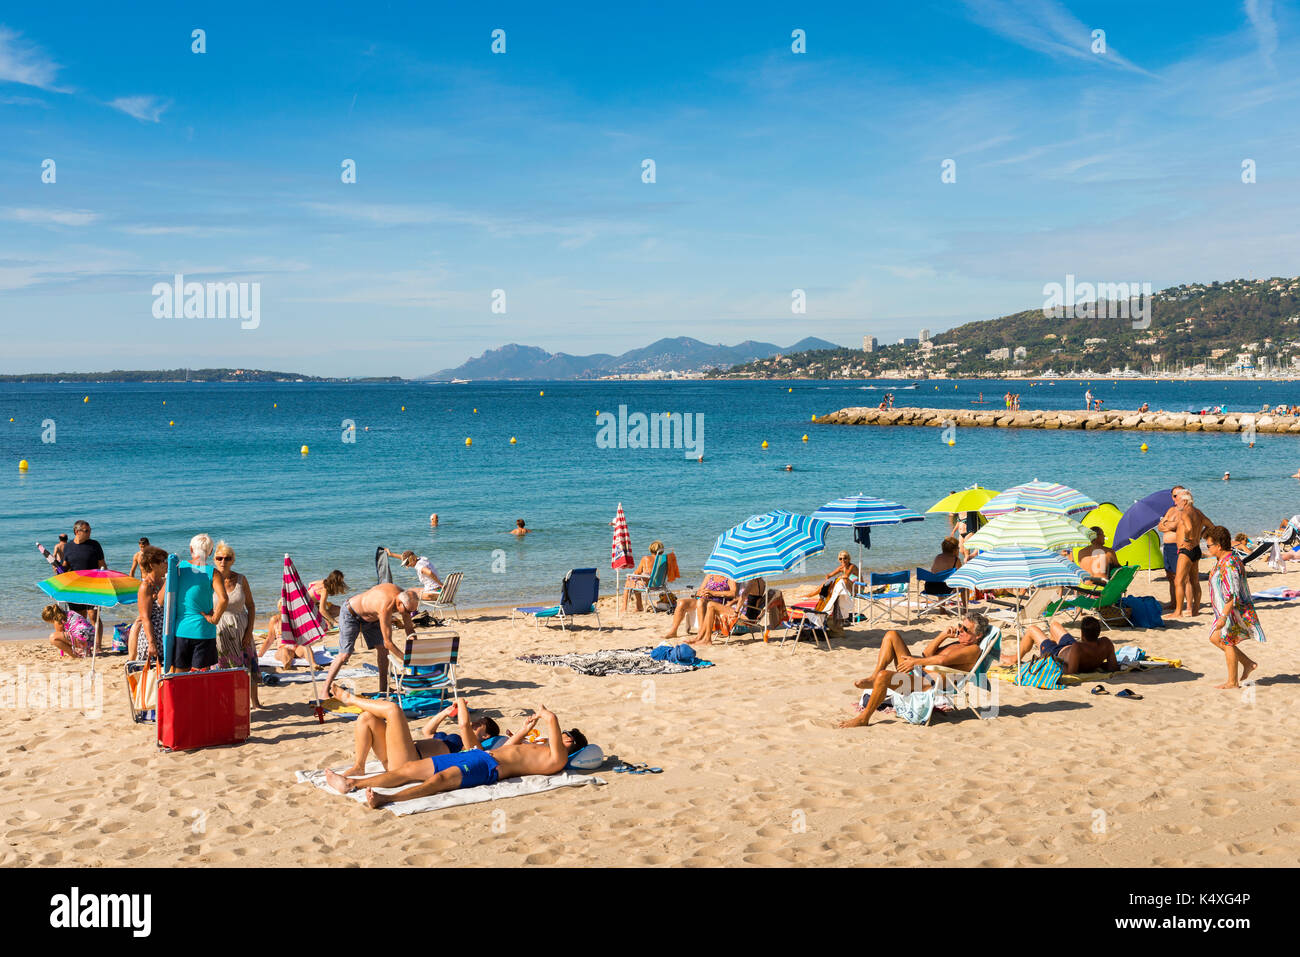 Juan les Pins, France - September 1st, 2017: Busy beach in Juan les Pins, Cote d'Azur, France. The city is famous for its annal Jazz Festival - Stock Image